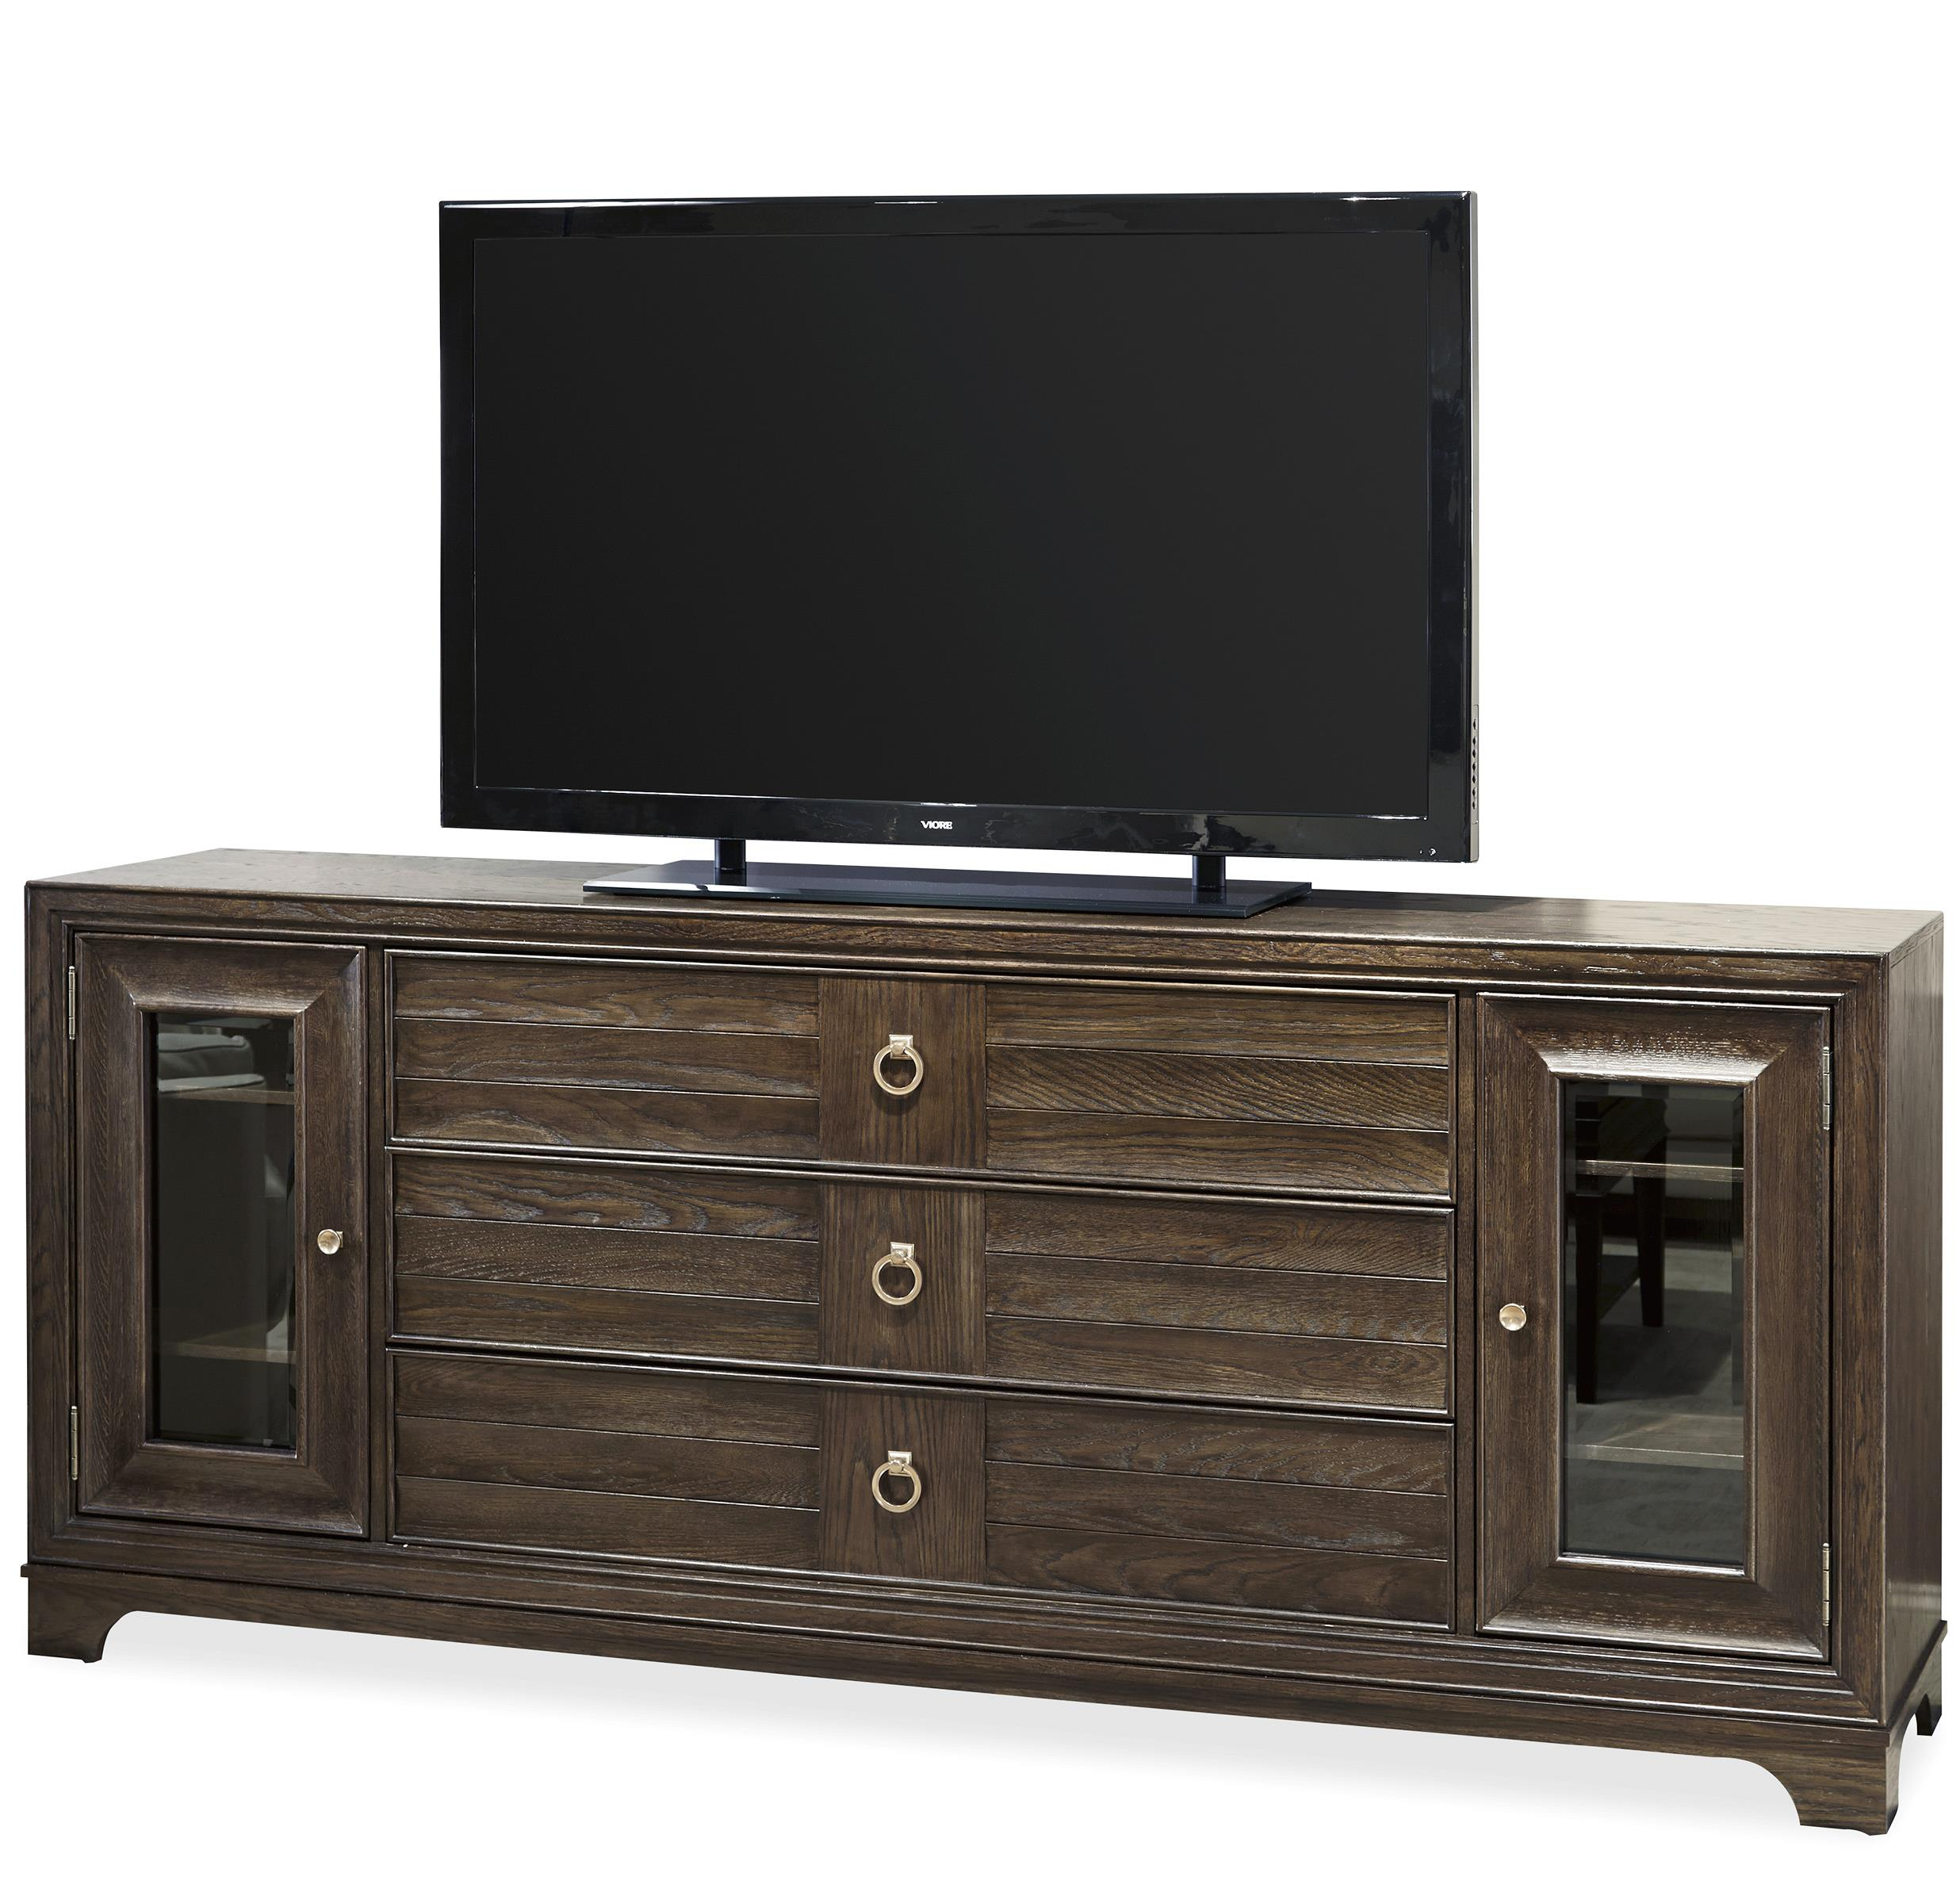 Universal California - Hollywood Hills Entertainment Console - Item Number: 475966